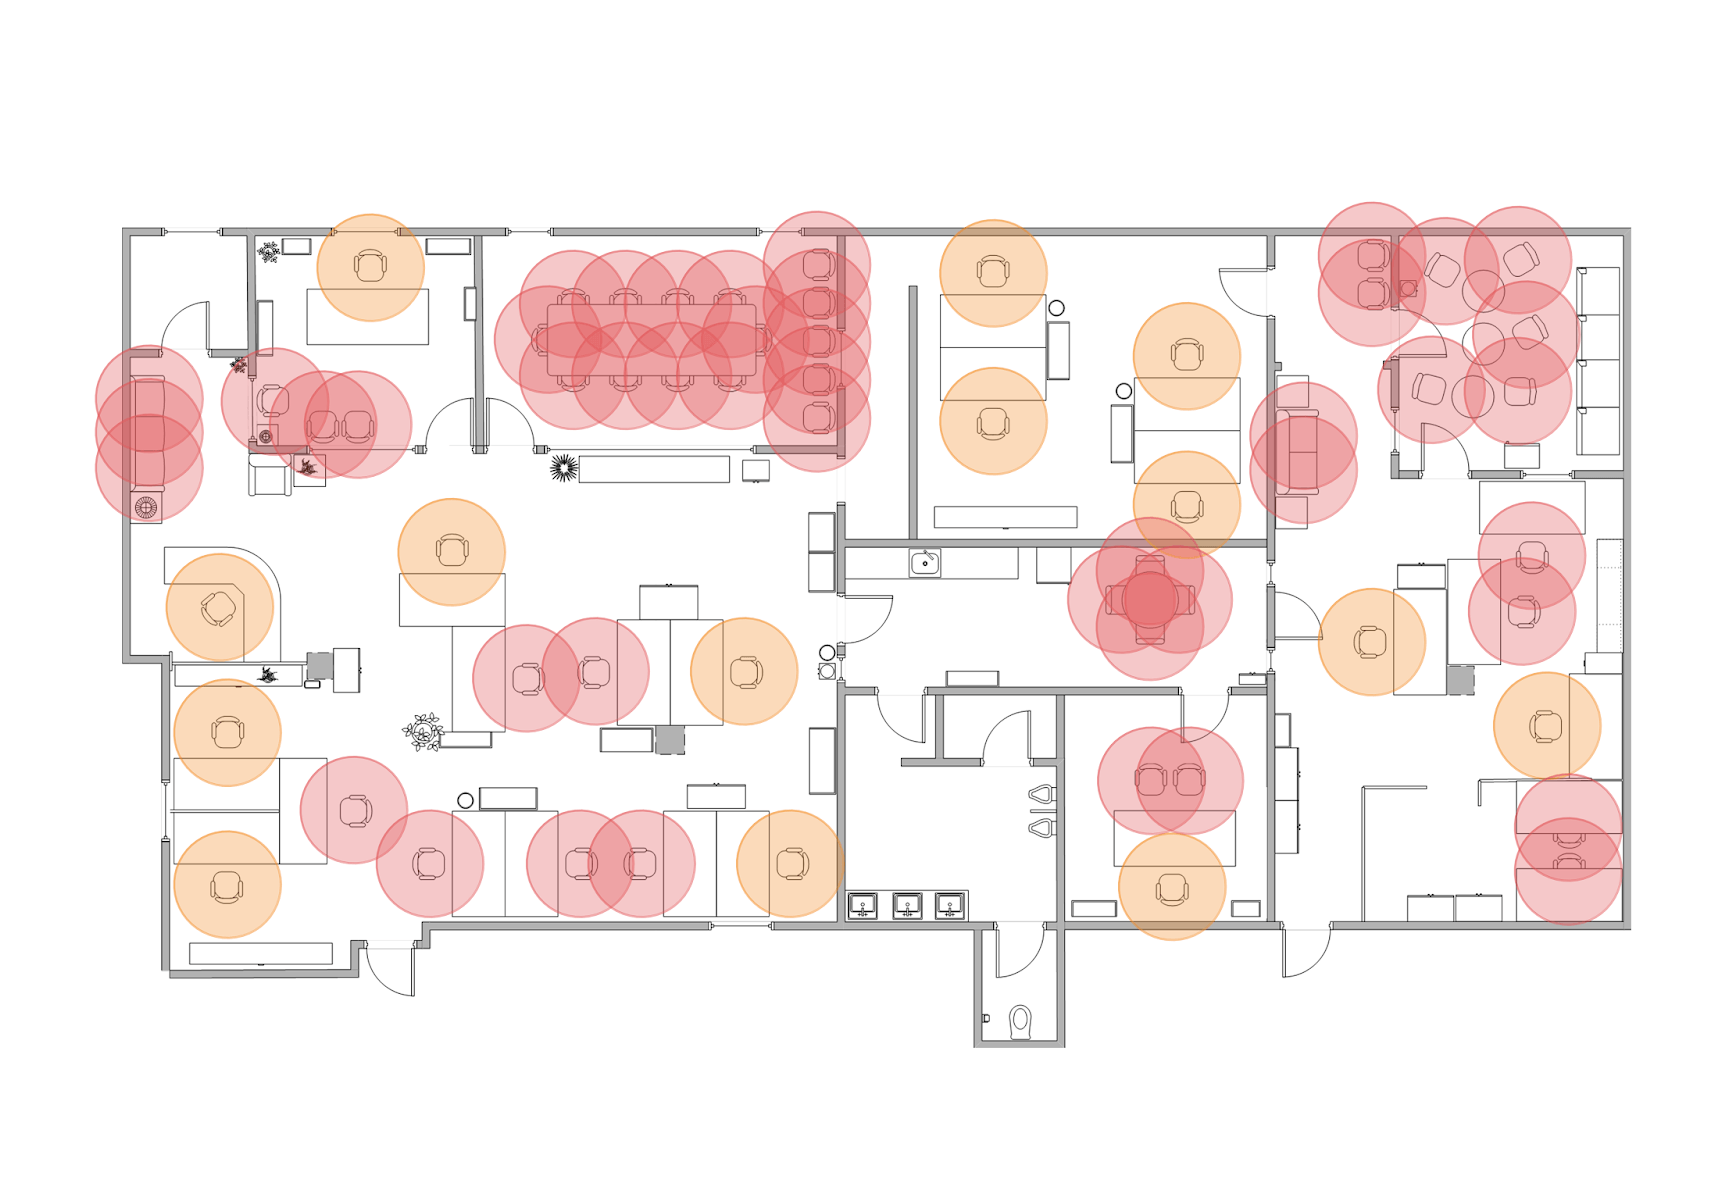 Visualization of floor plan during Covid-19